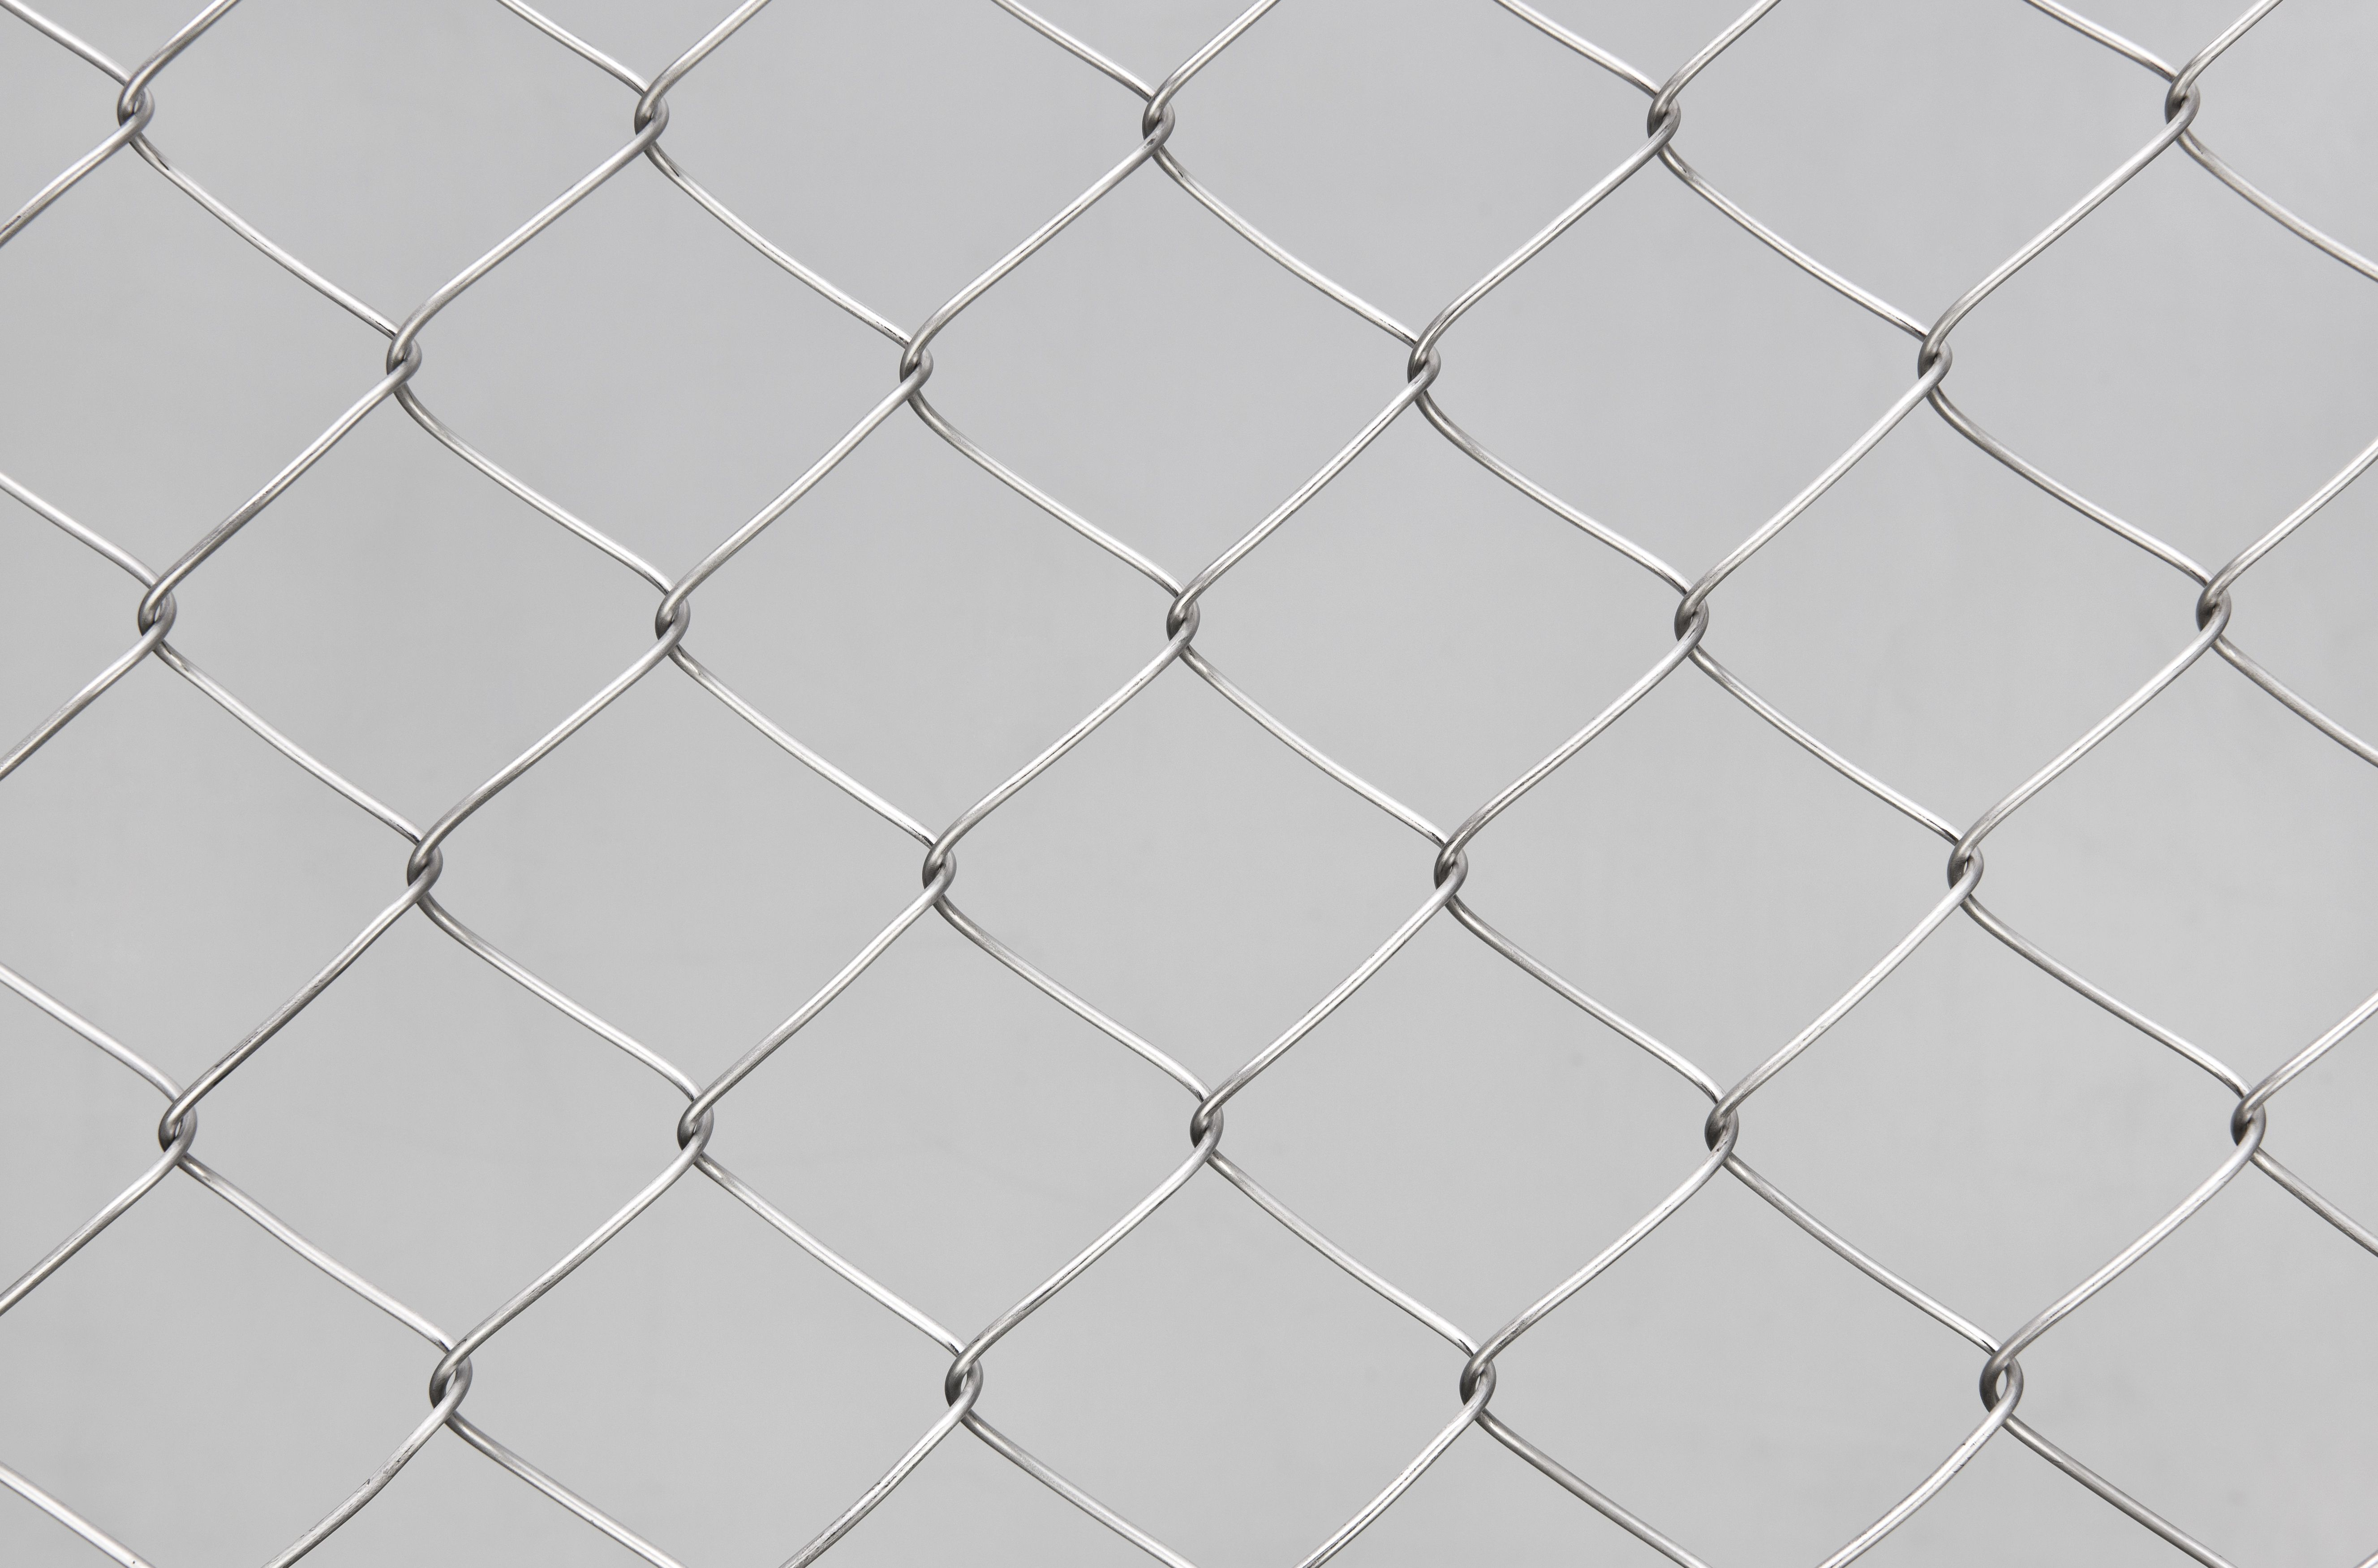 Stainless steel 2.5mm chainlink wire fencing | Stainless Steel ...